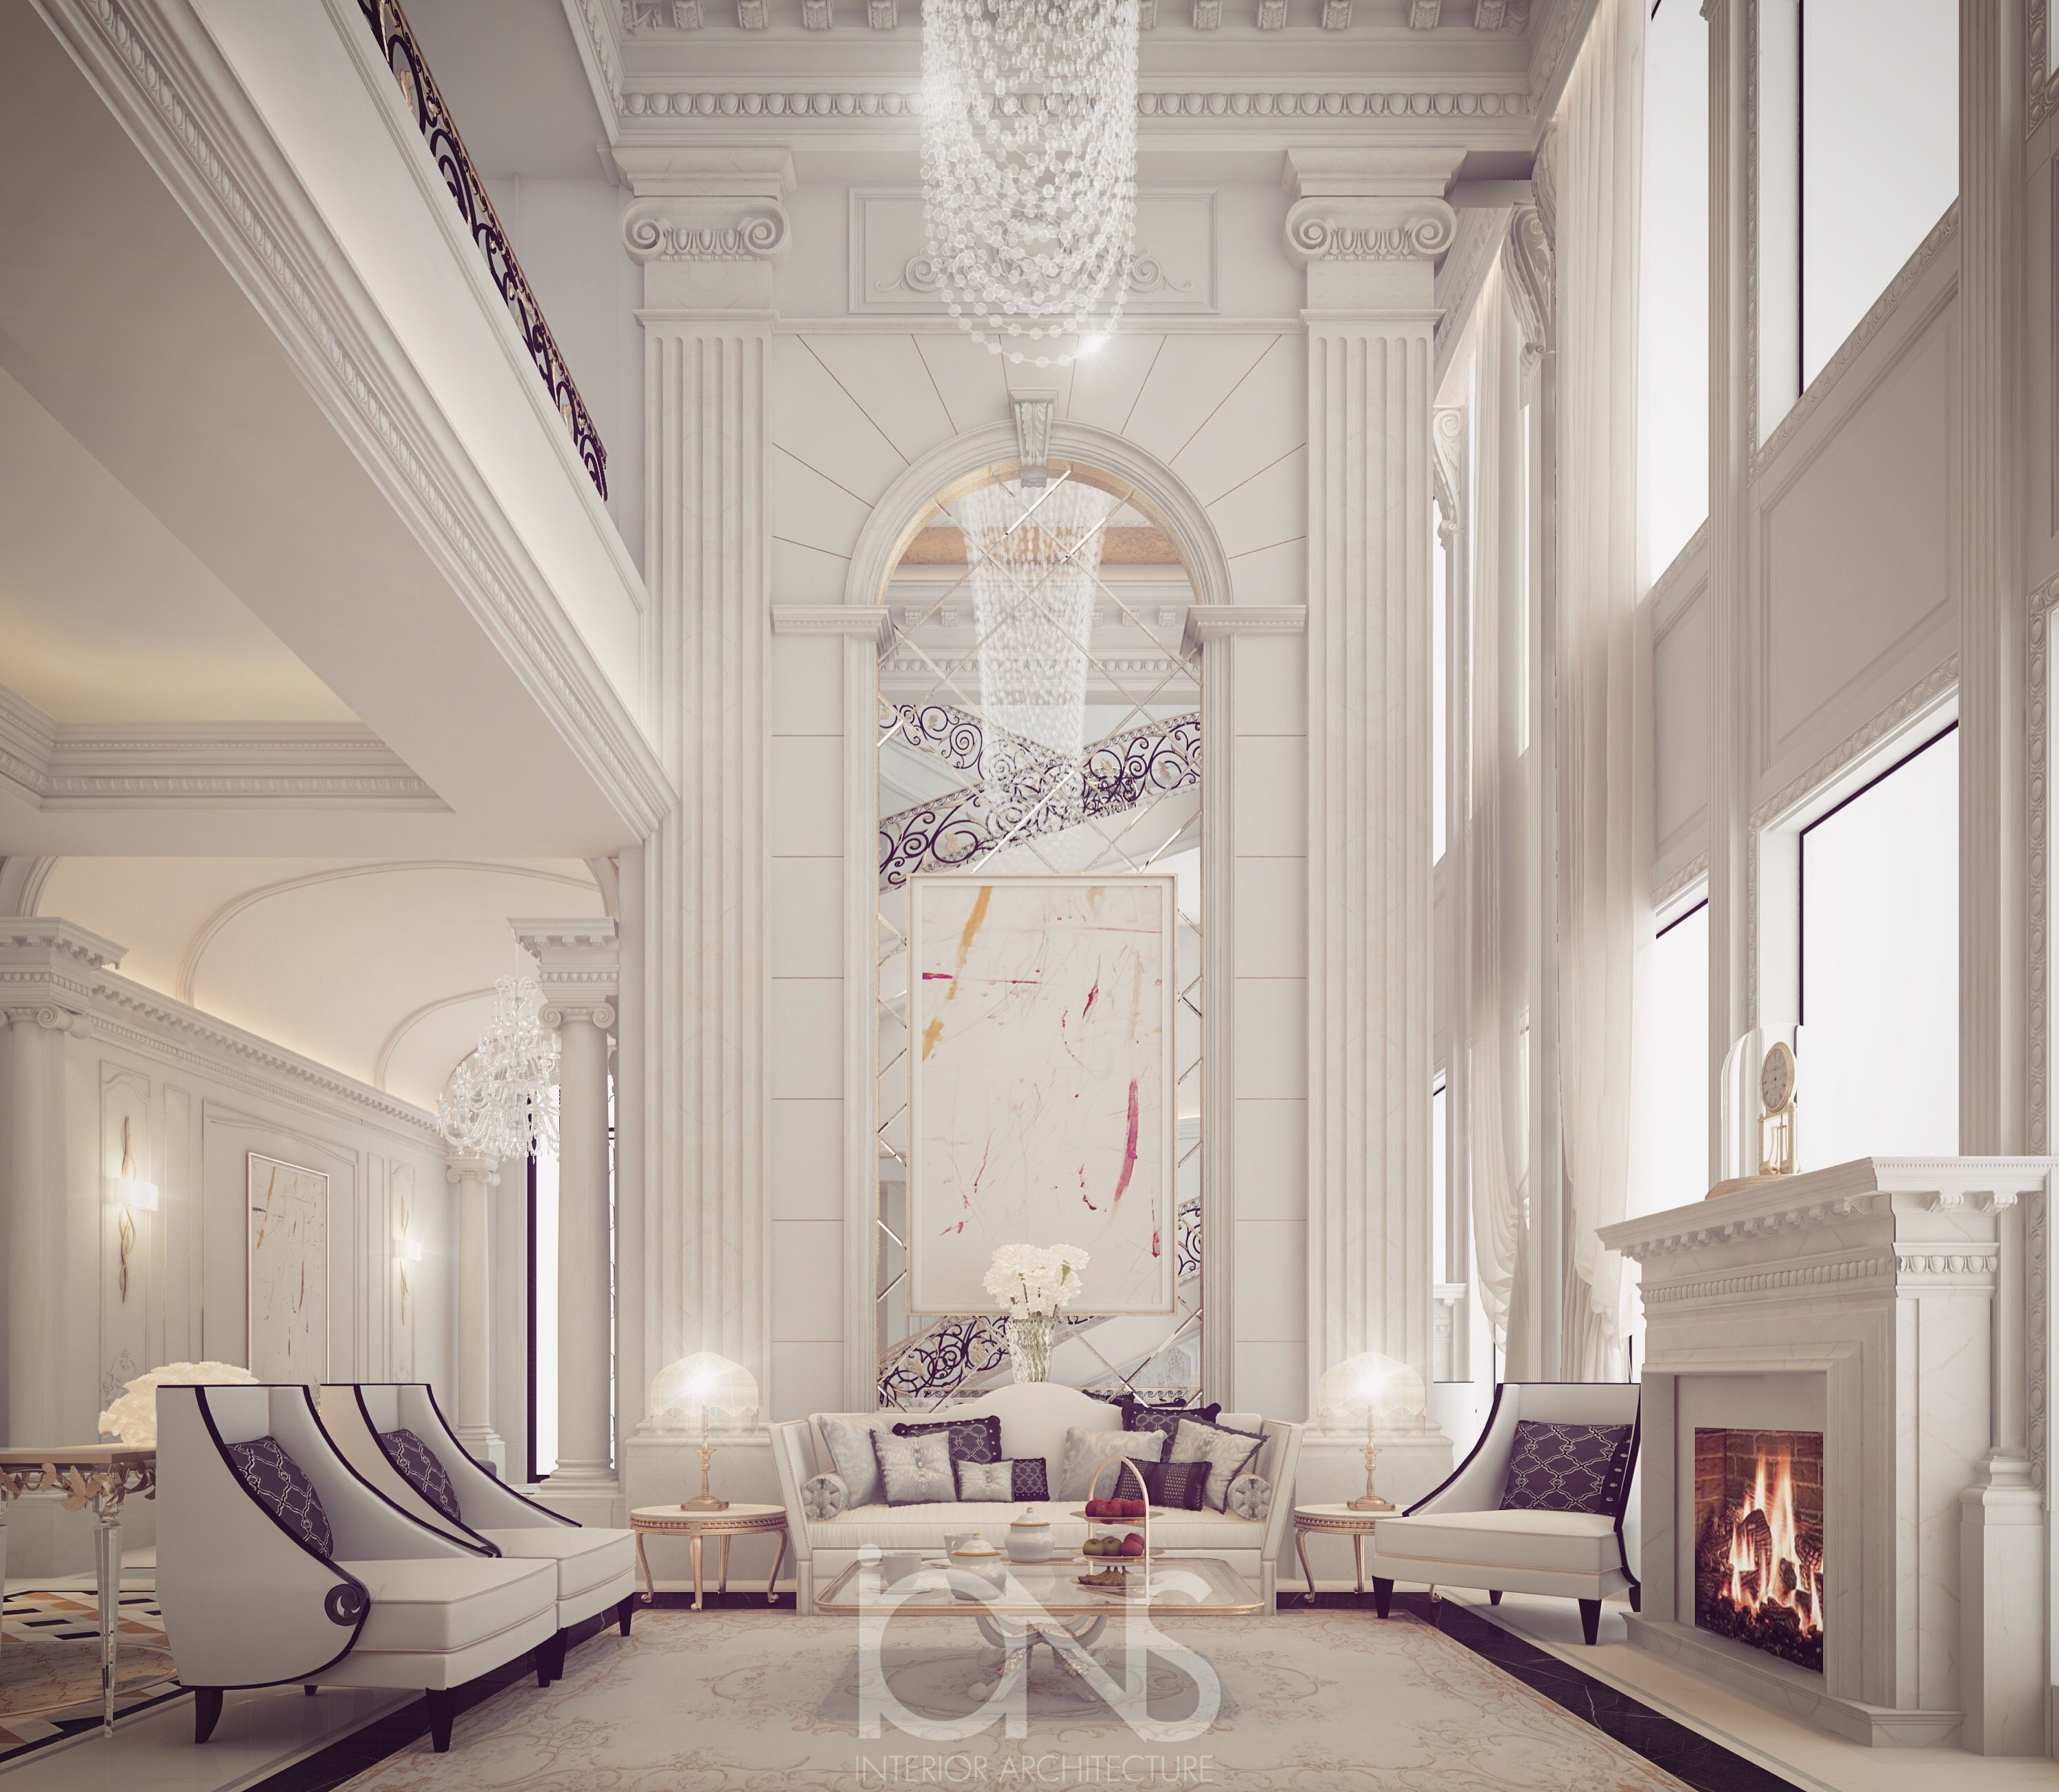 Fireplace Lounge Design   Private Palace   Doha   Qatar